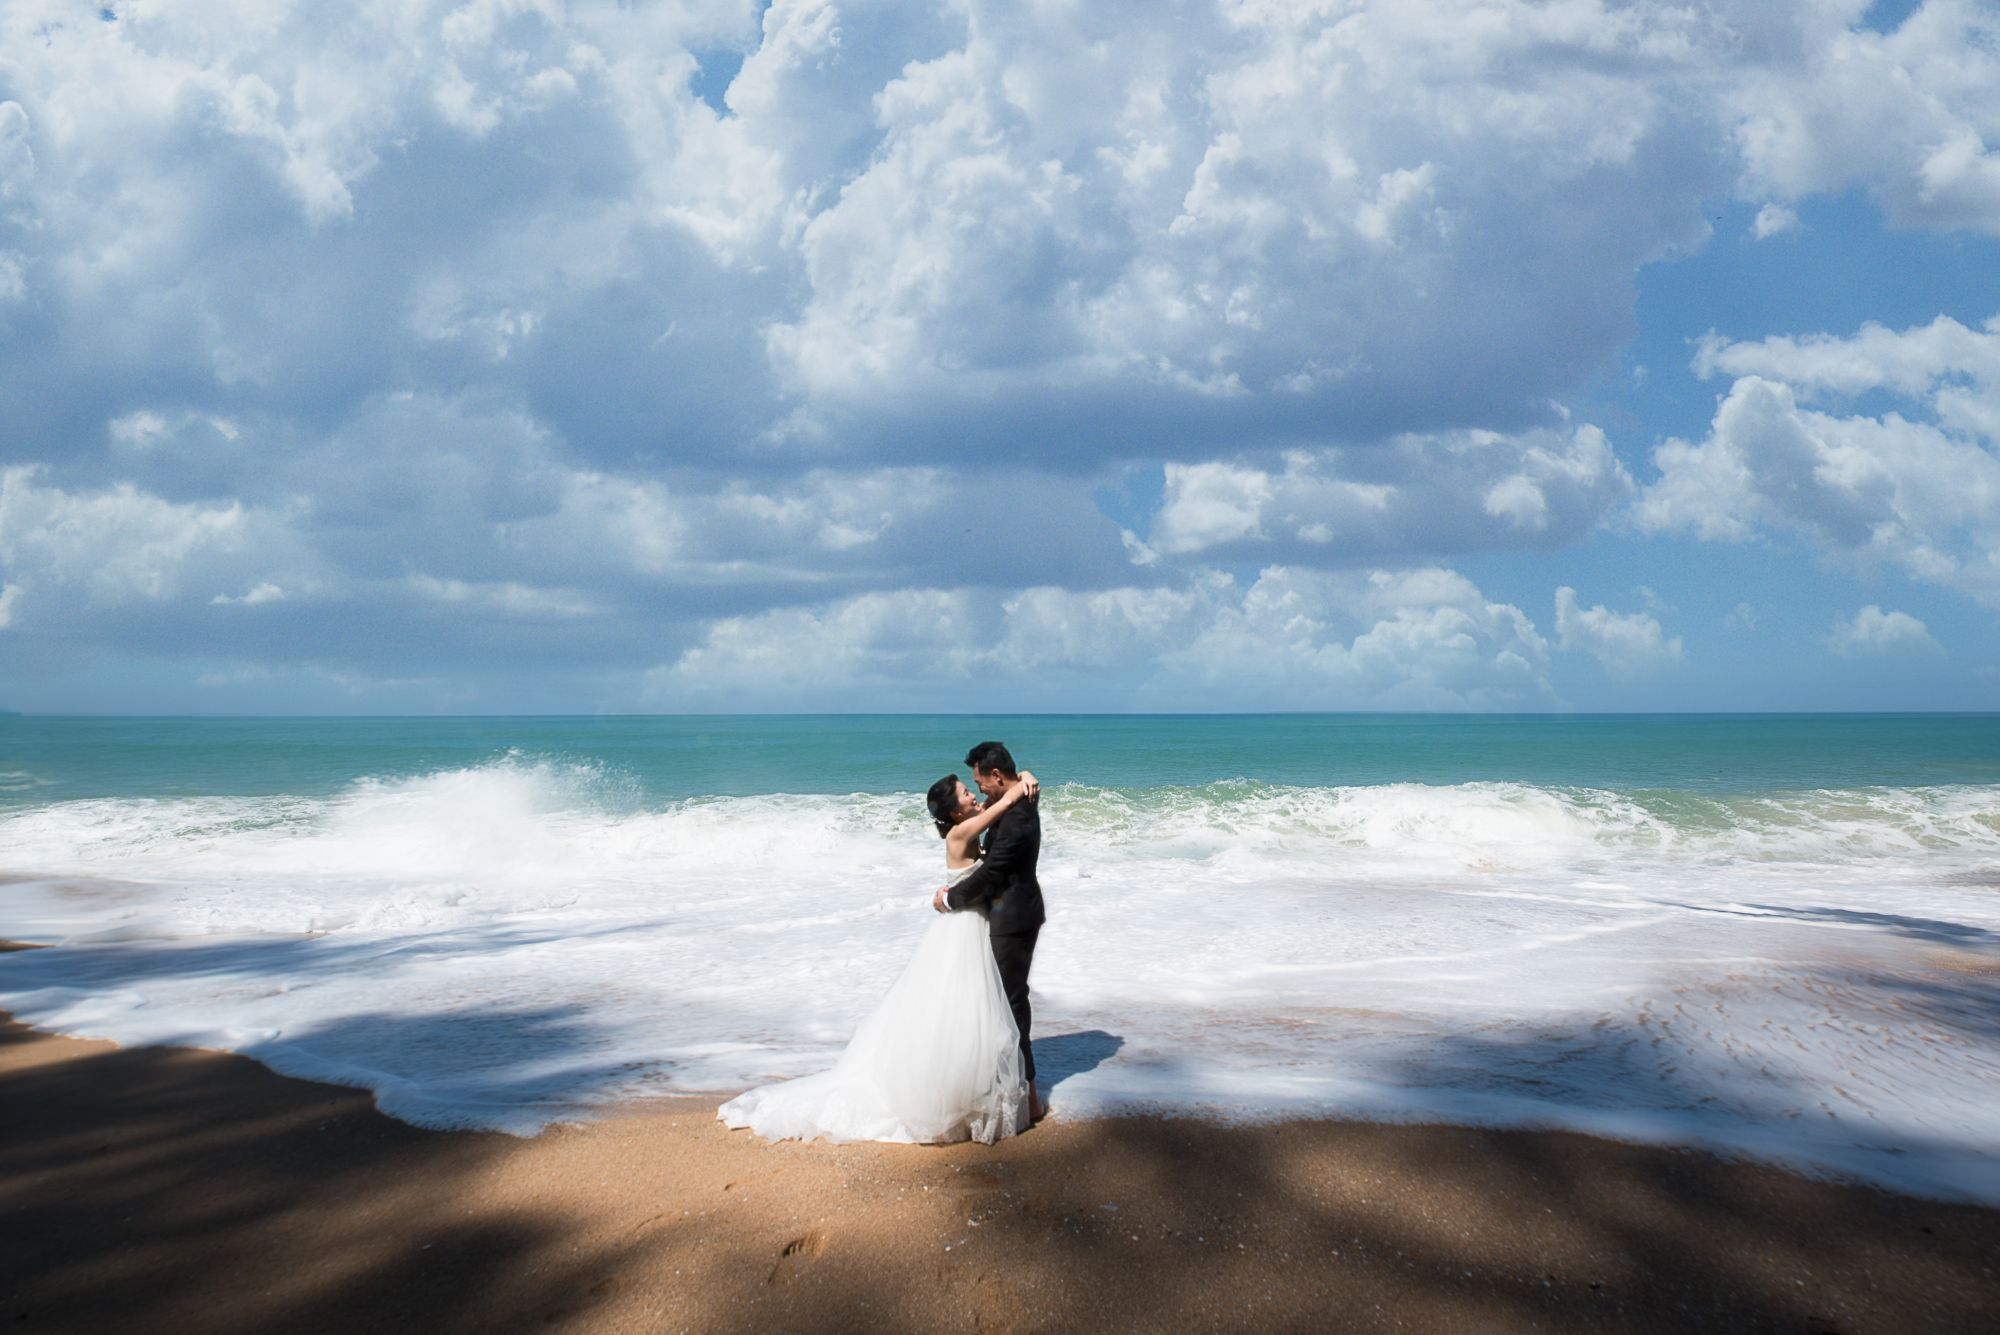 Ask The Expert: What Do I Need To Prepare For My Destination Wedding Shoot?